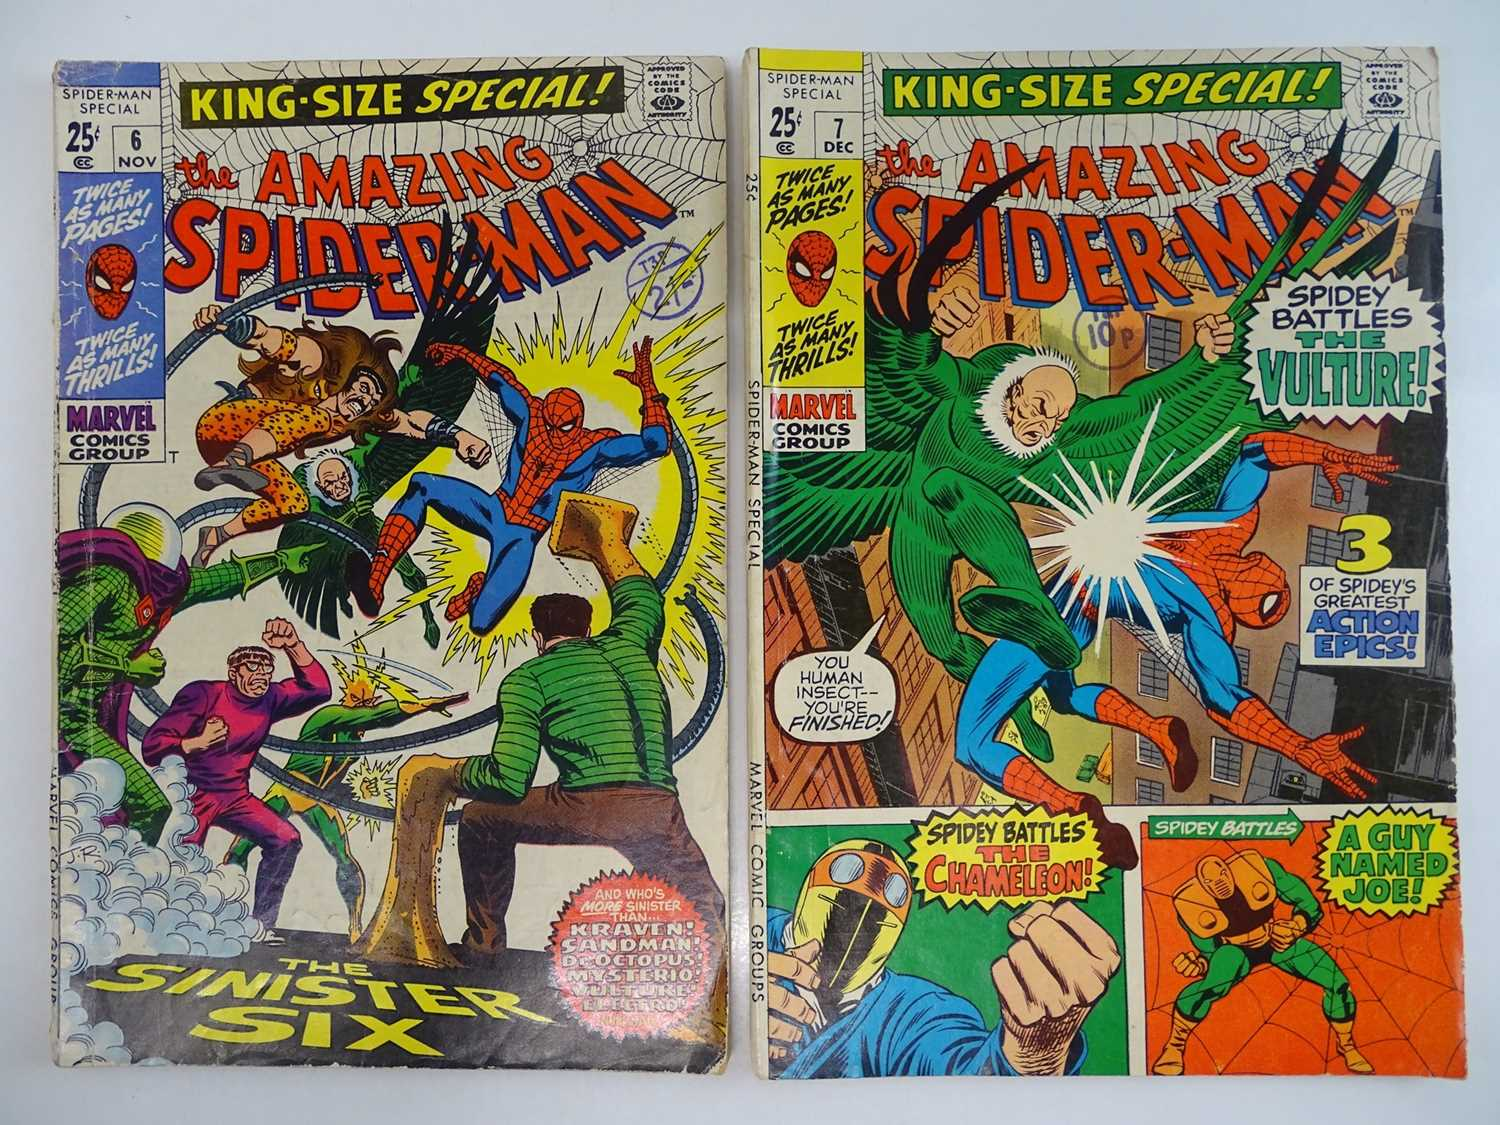 AMAZING SPIDER-MAN: KING-SIZE SPECIAL #6 & 7 - (1968 - MARVEL - UK Cover Price) - King-Size Specials